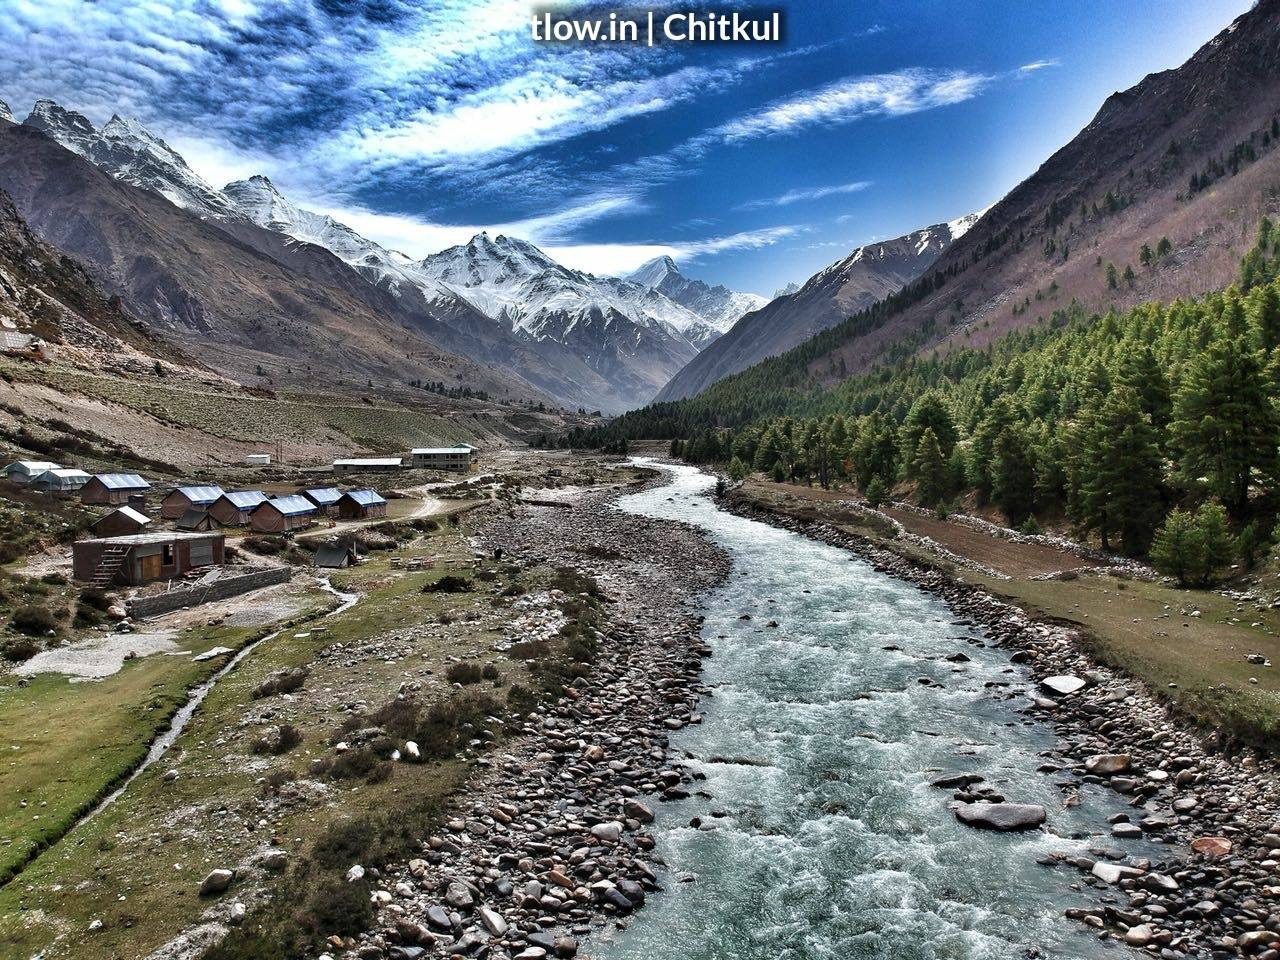 Chitkul in summer